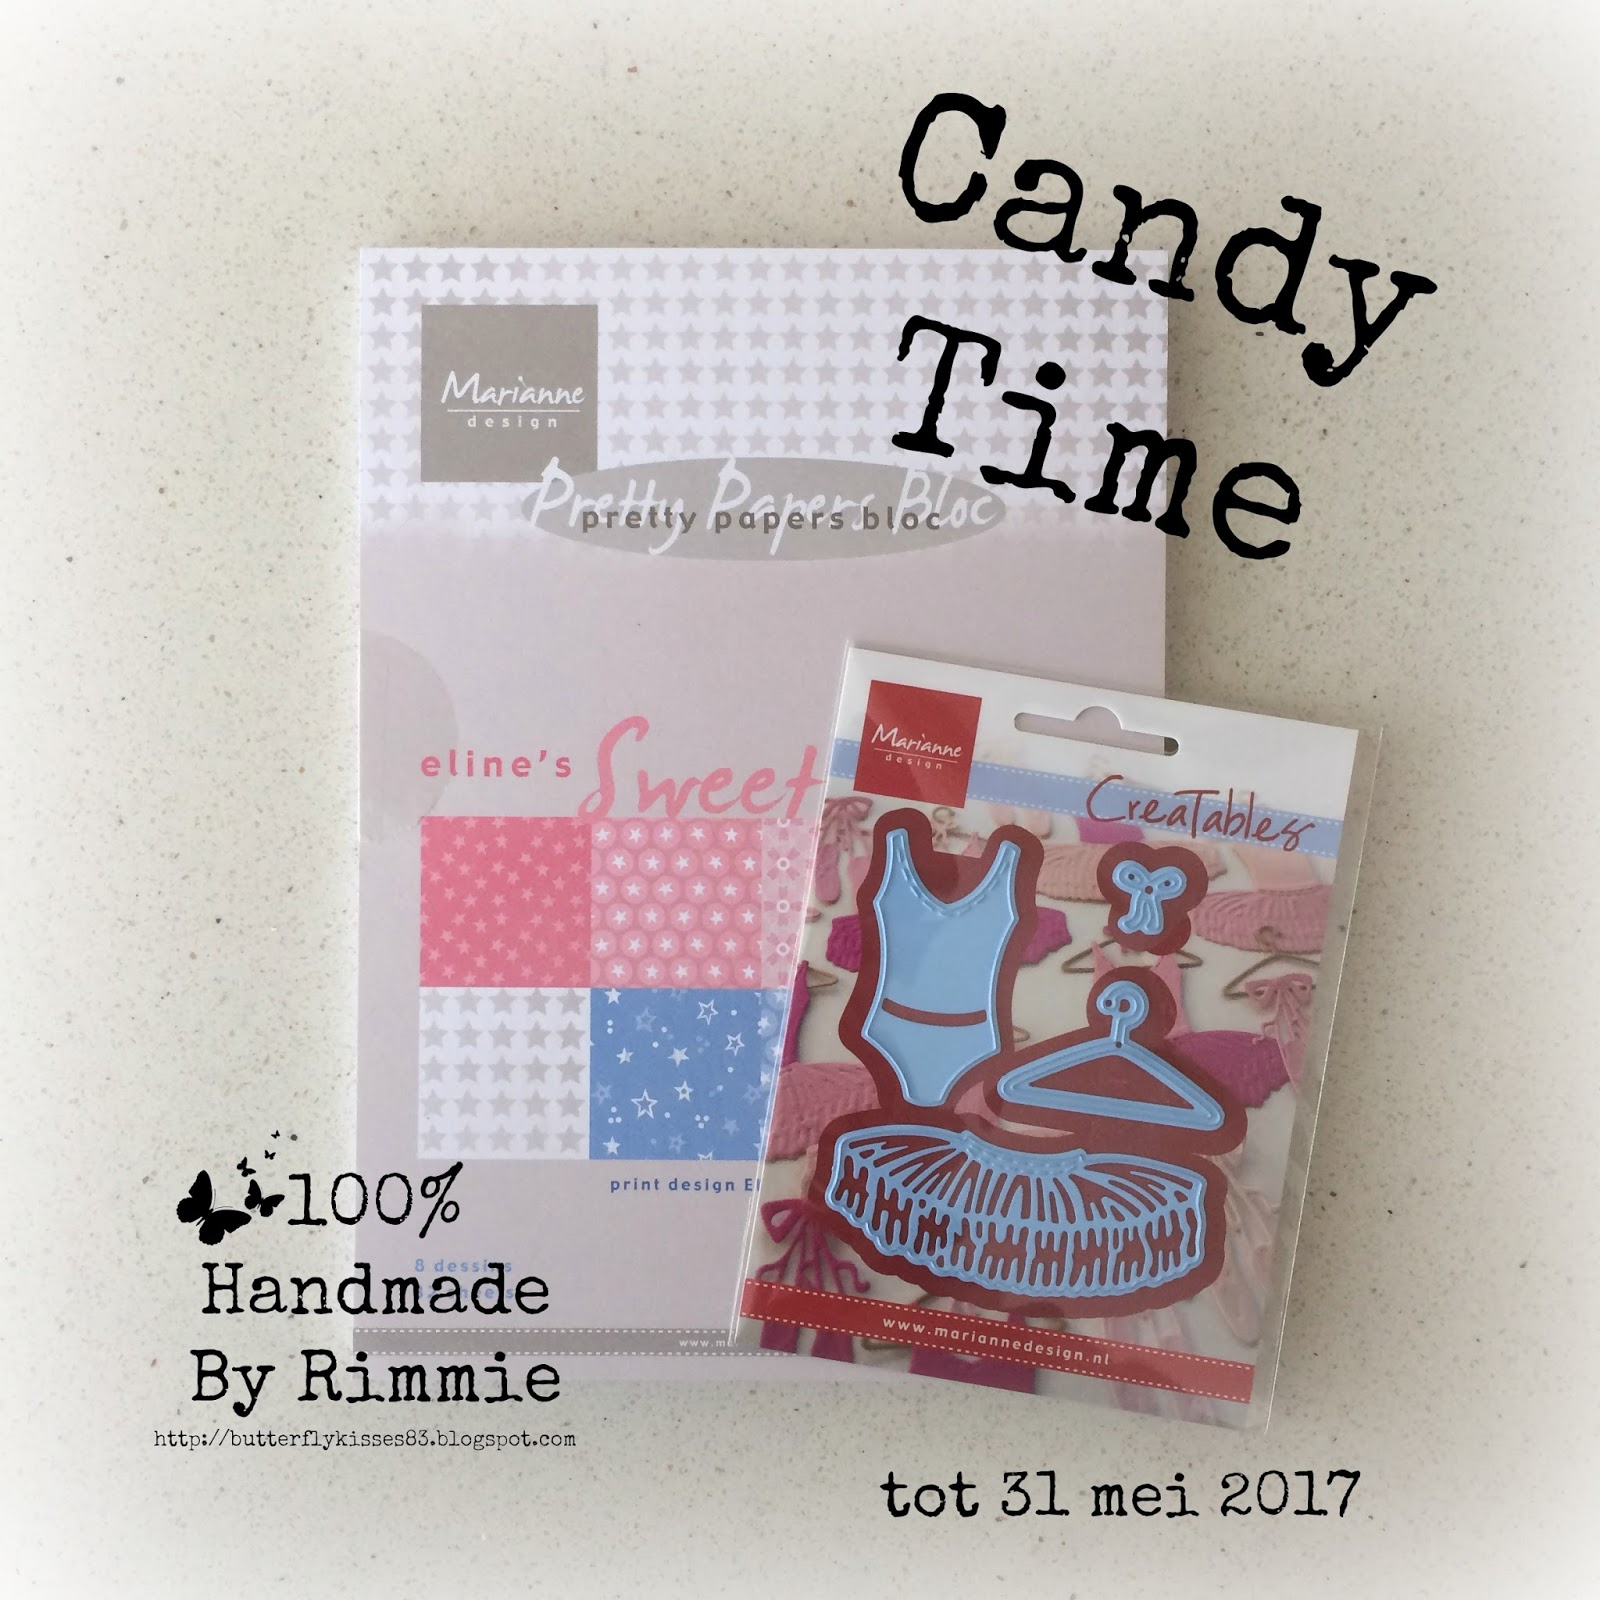 Candy 100% handmade by Rimmie